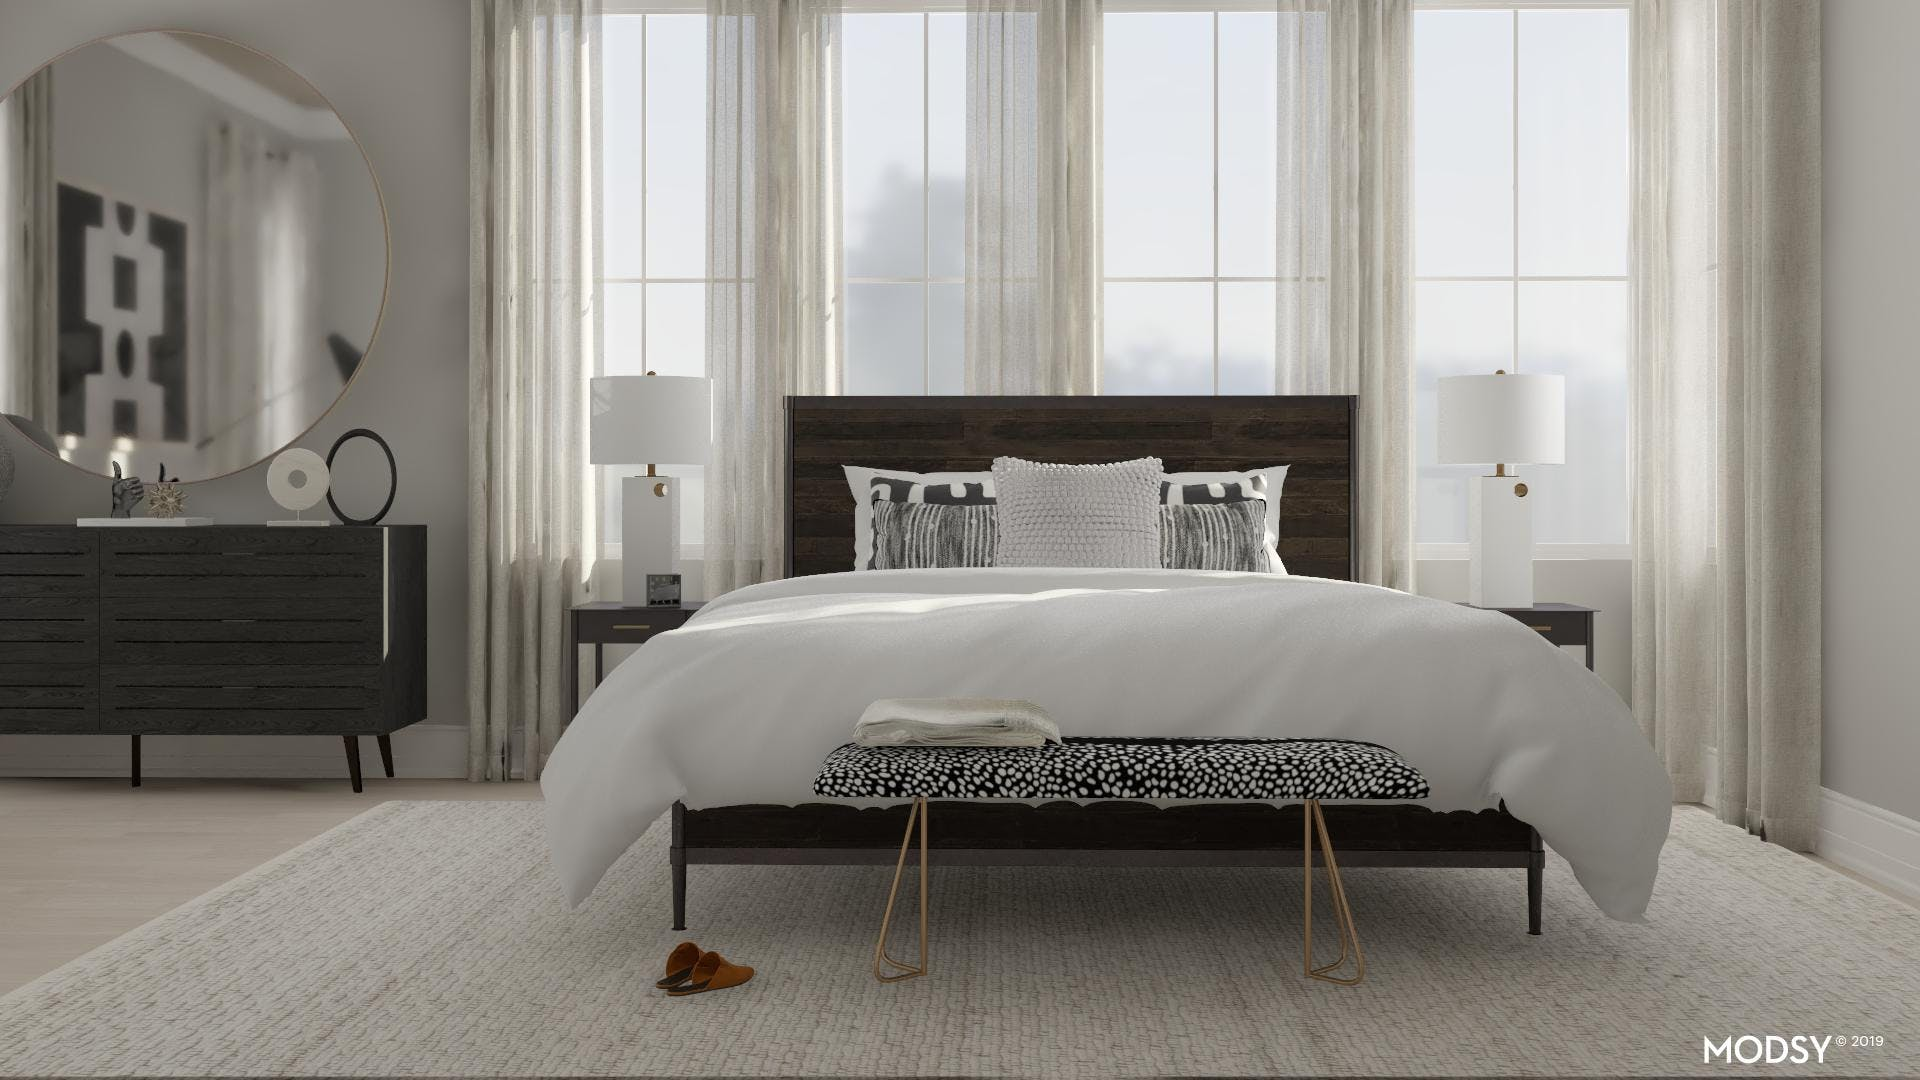 Modern Bedroom Meant For Relaxation